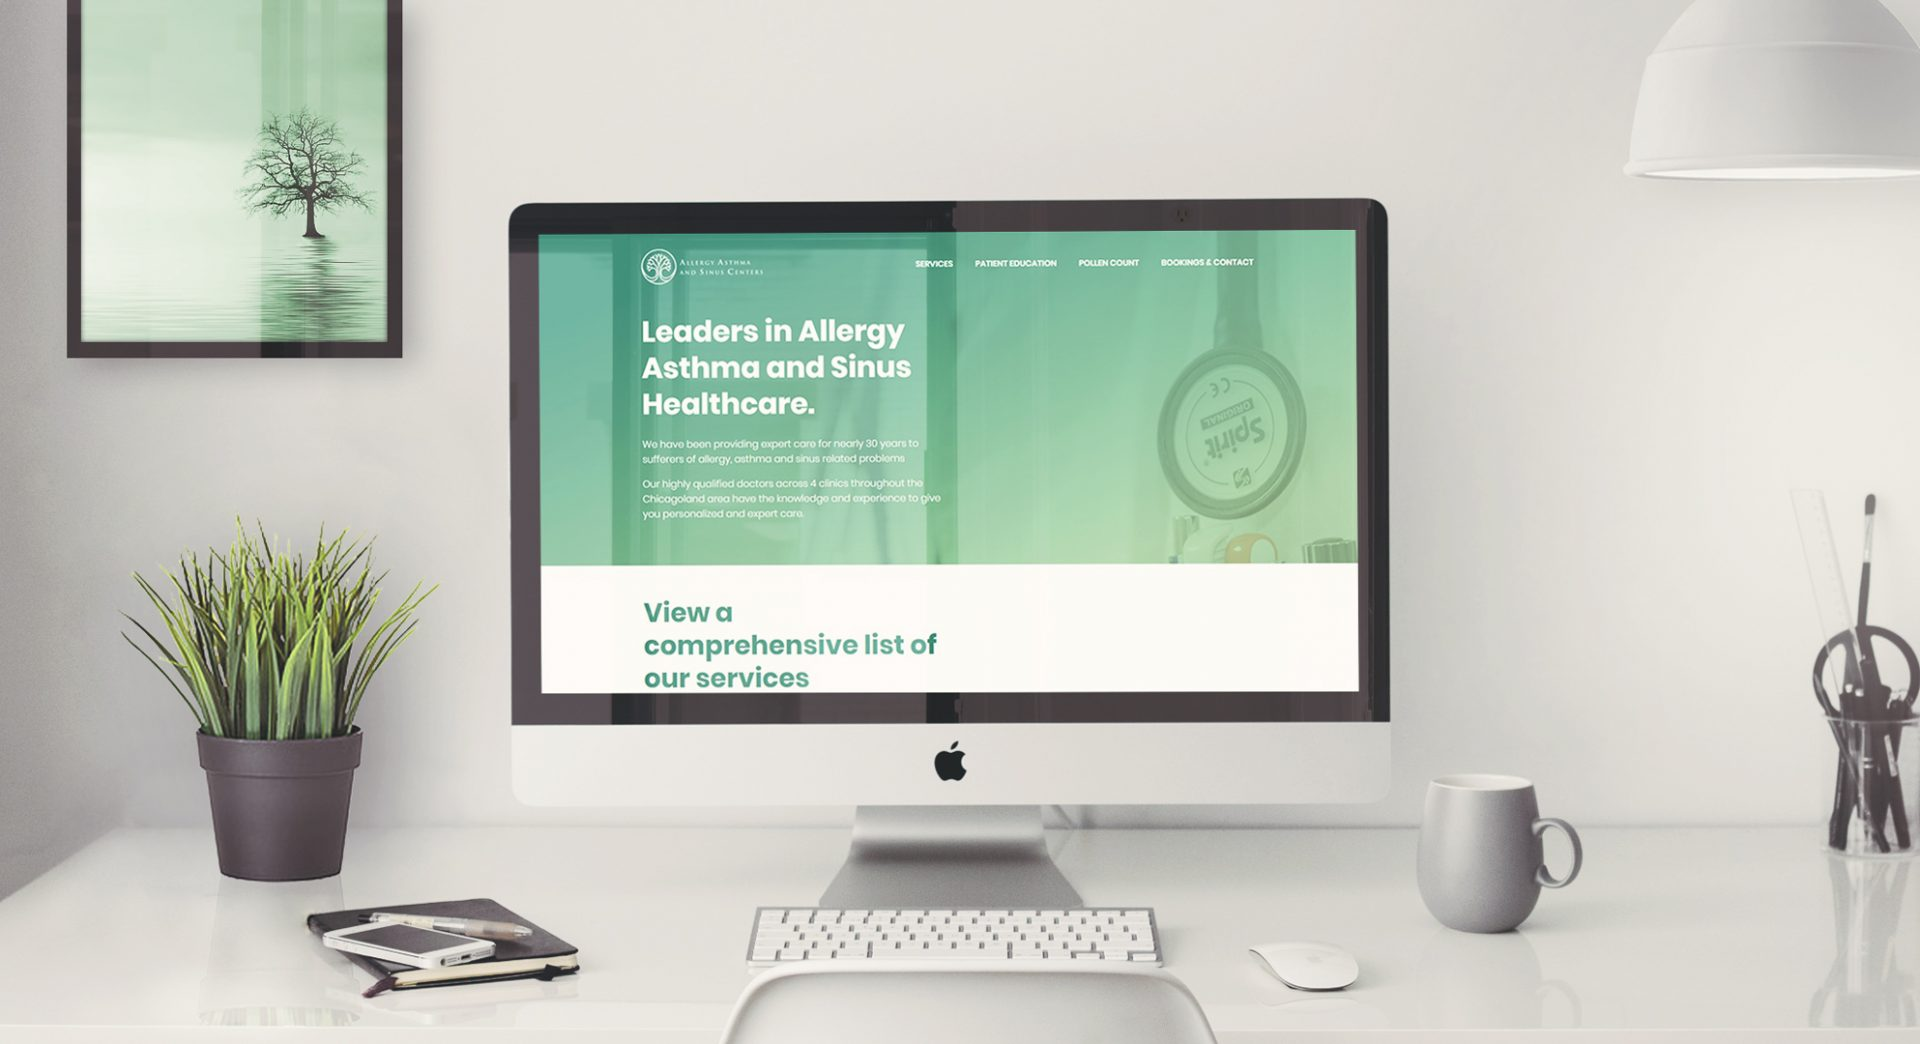 New Allergy, Asthma and Sinus Website (mockup)